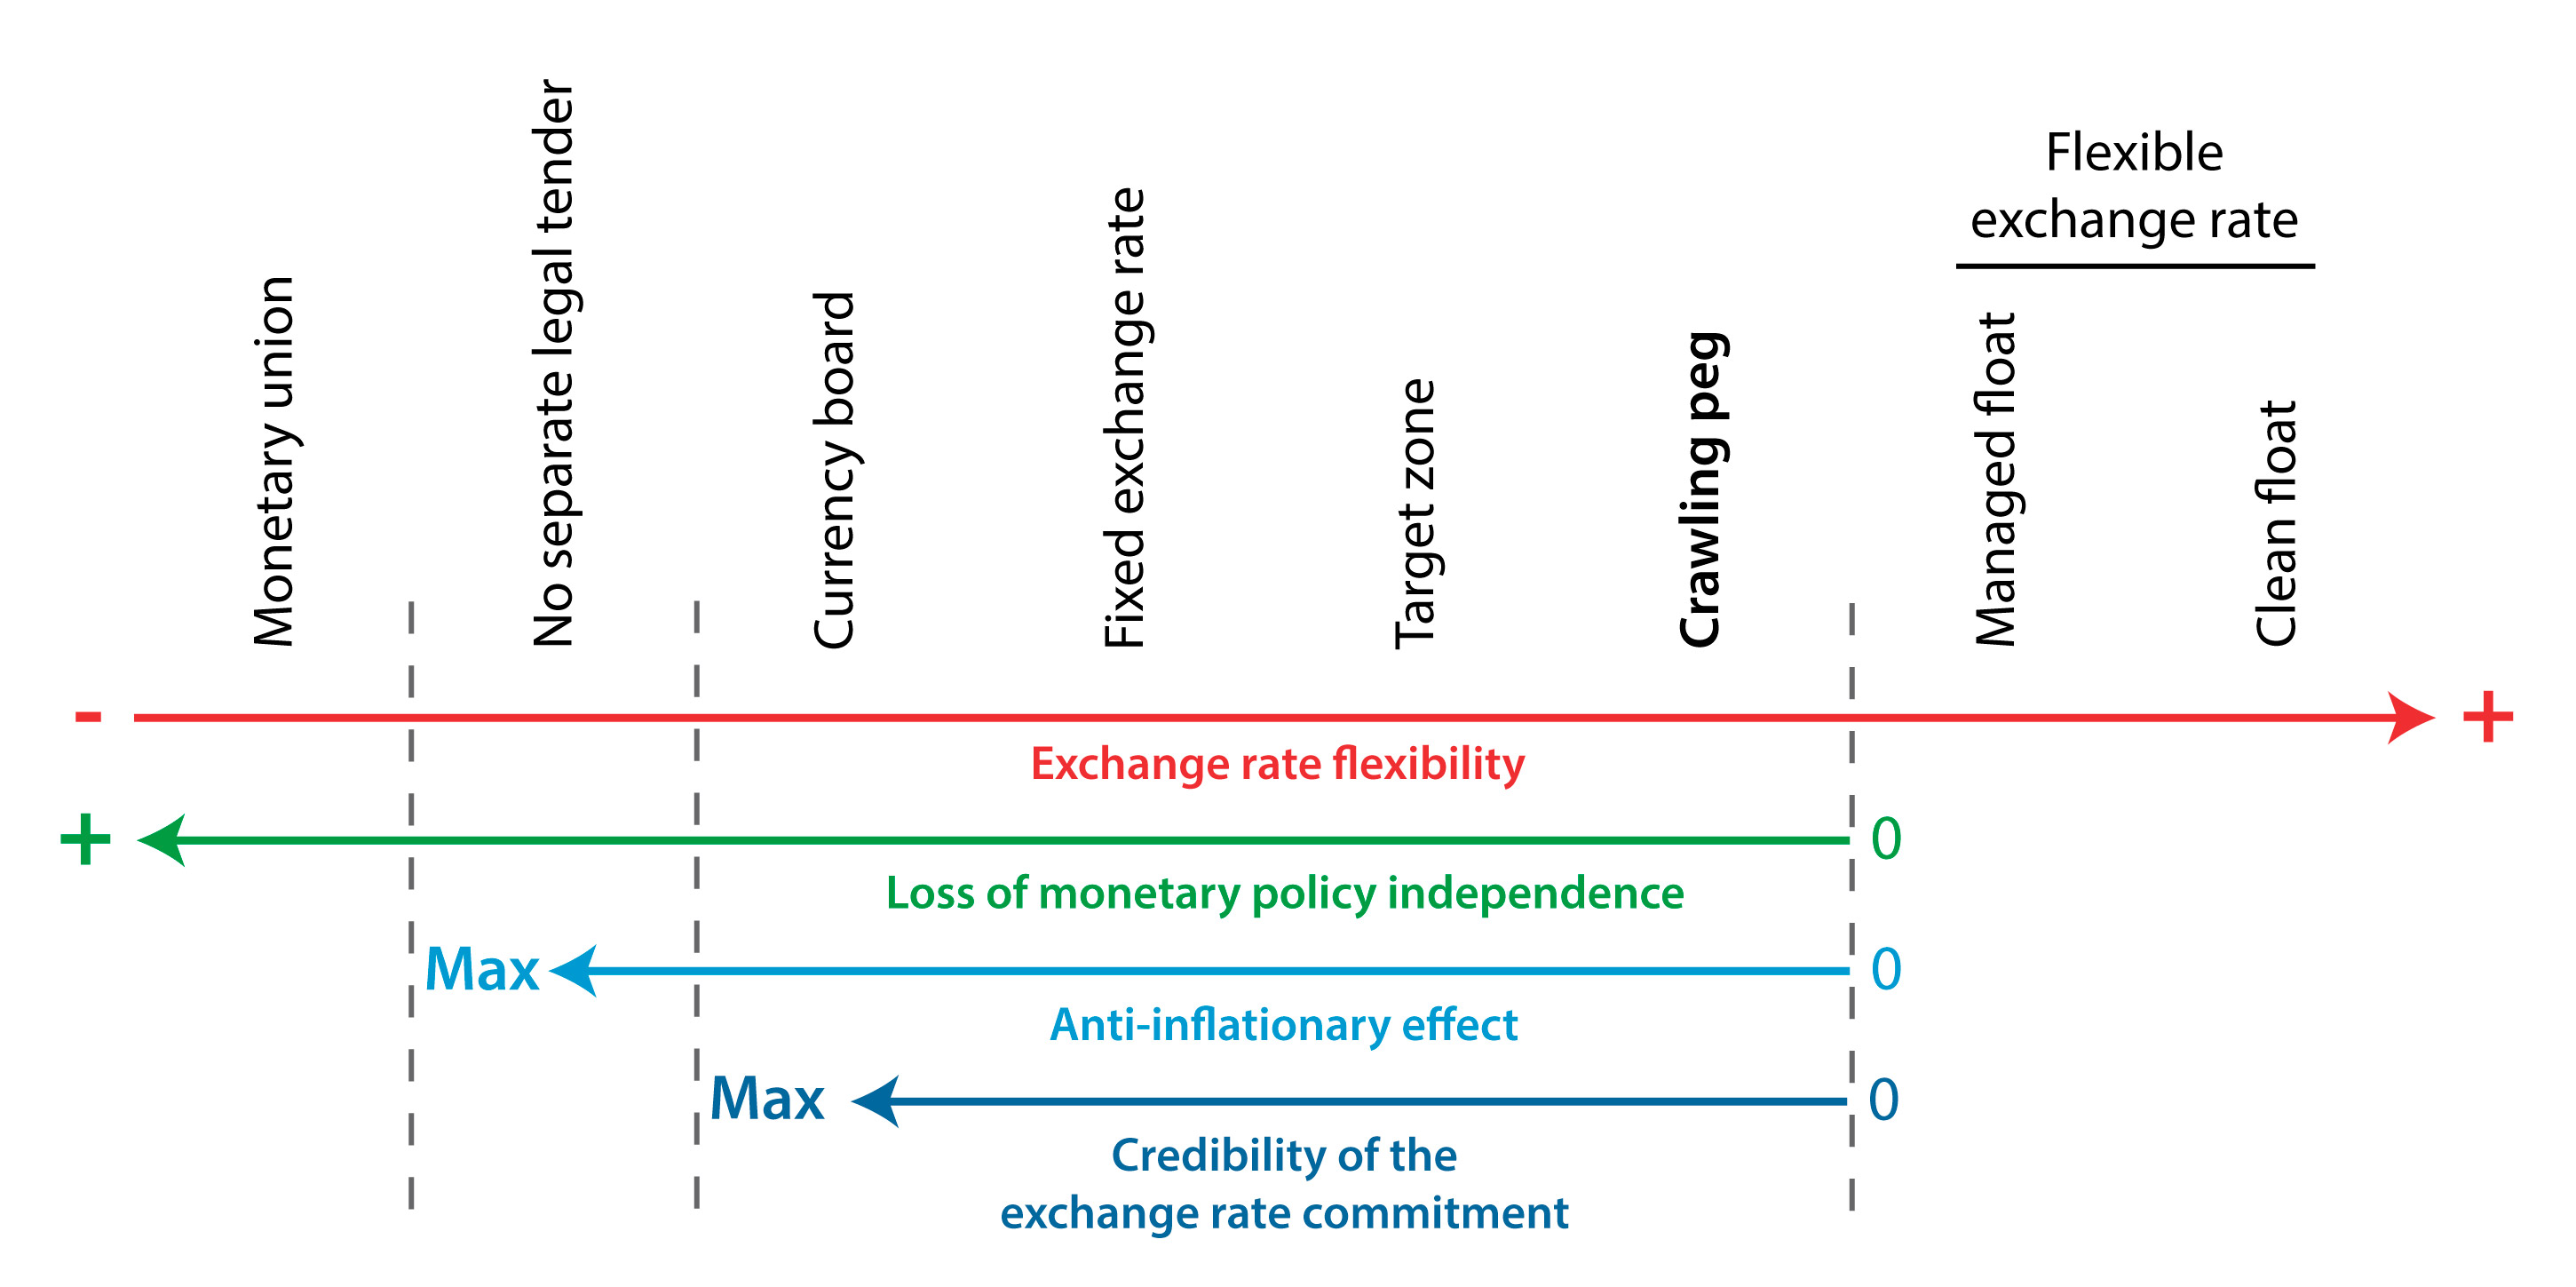 Exchange rate regimes - Crawling peg